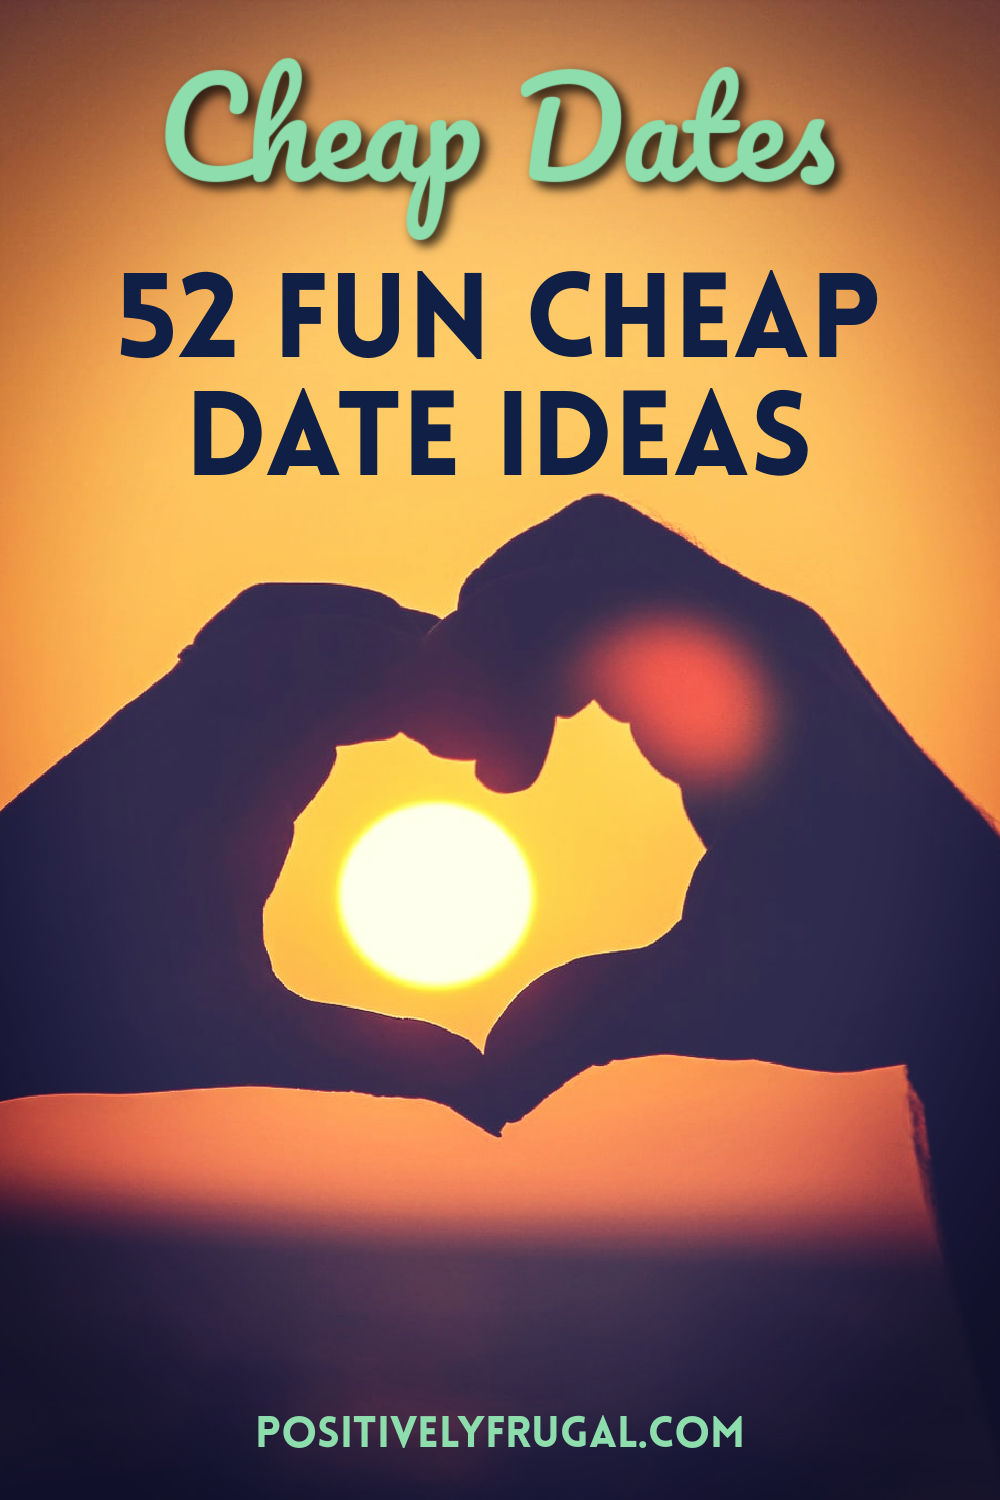 Cheap Dates by PositivelyFrugal.com